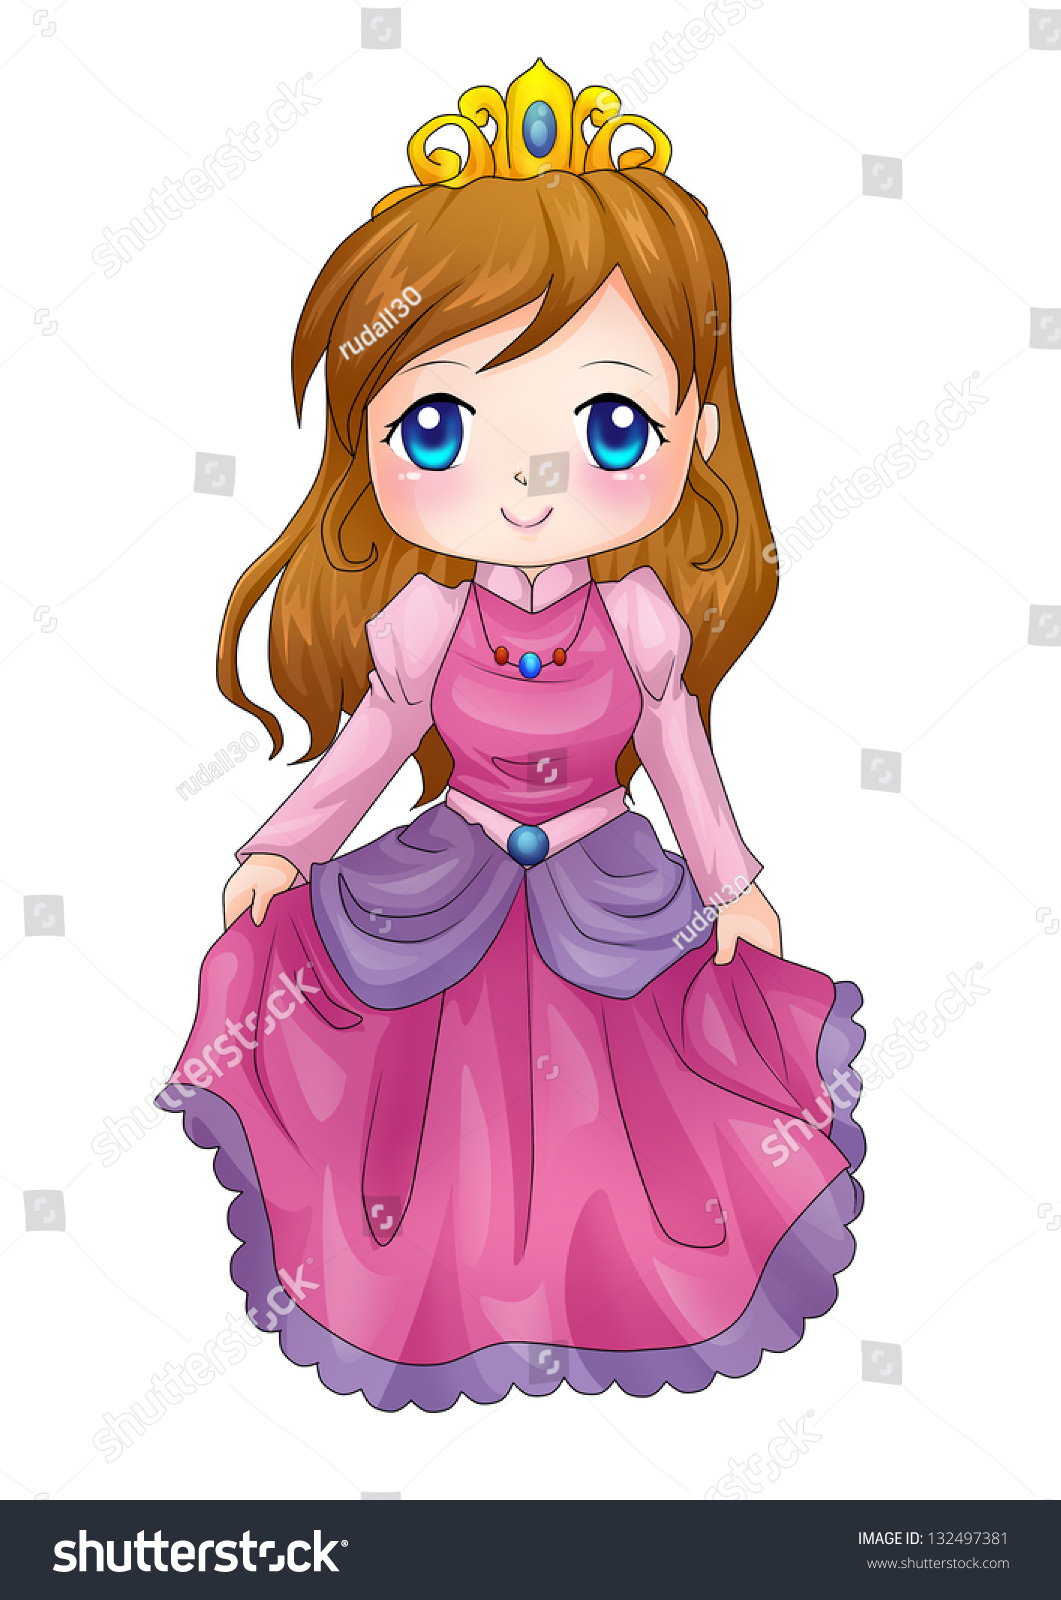 cute cartoon illustration queen stock illustration